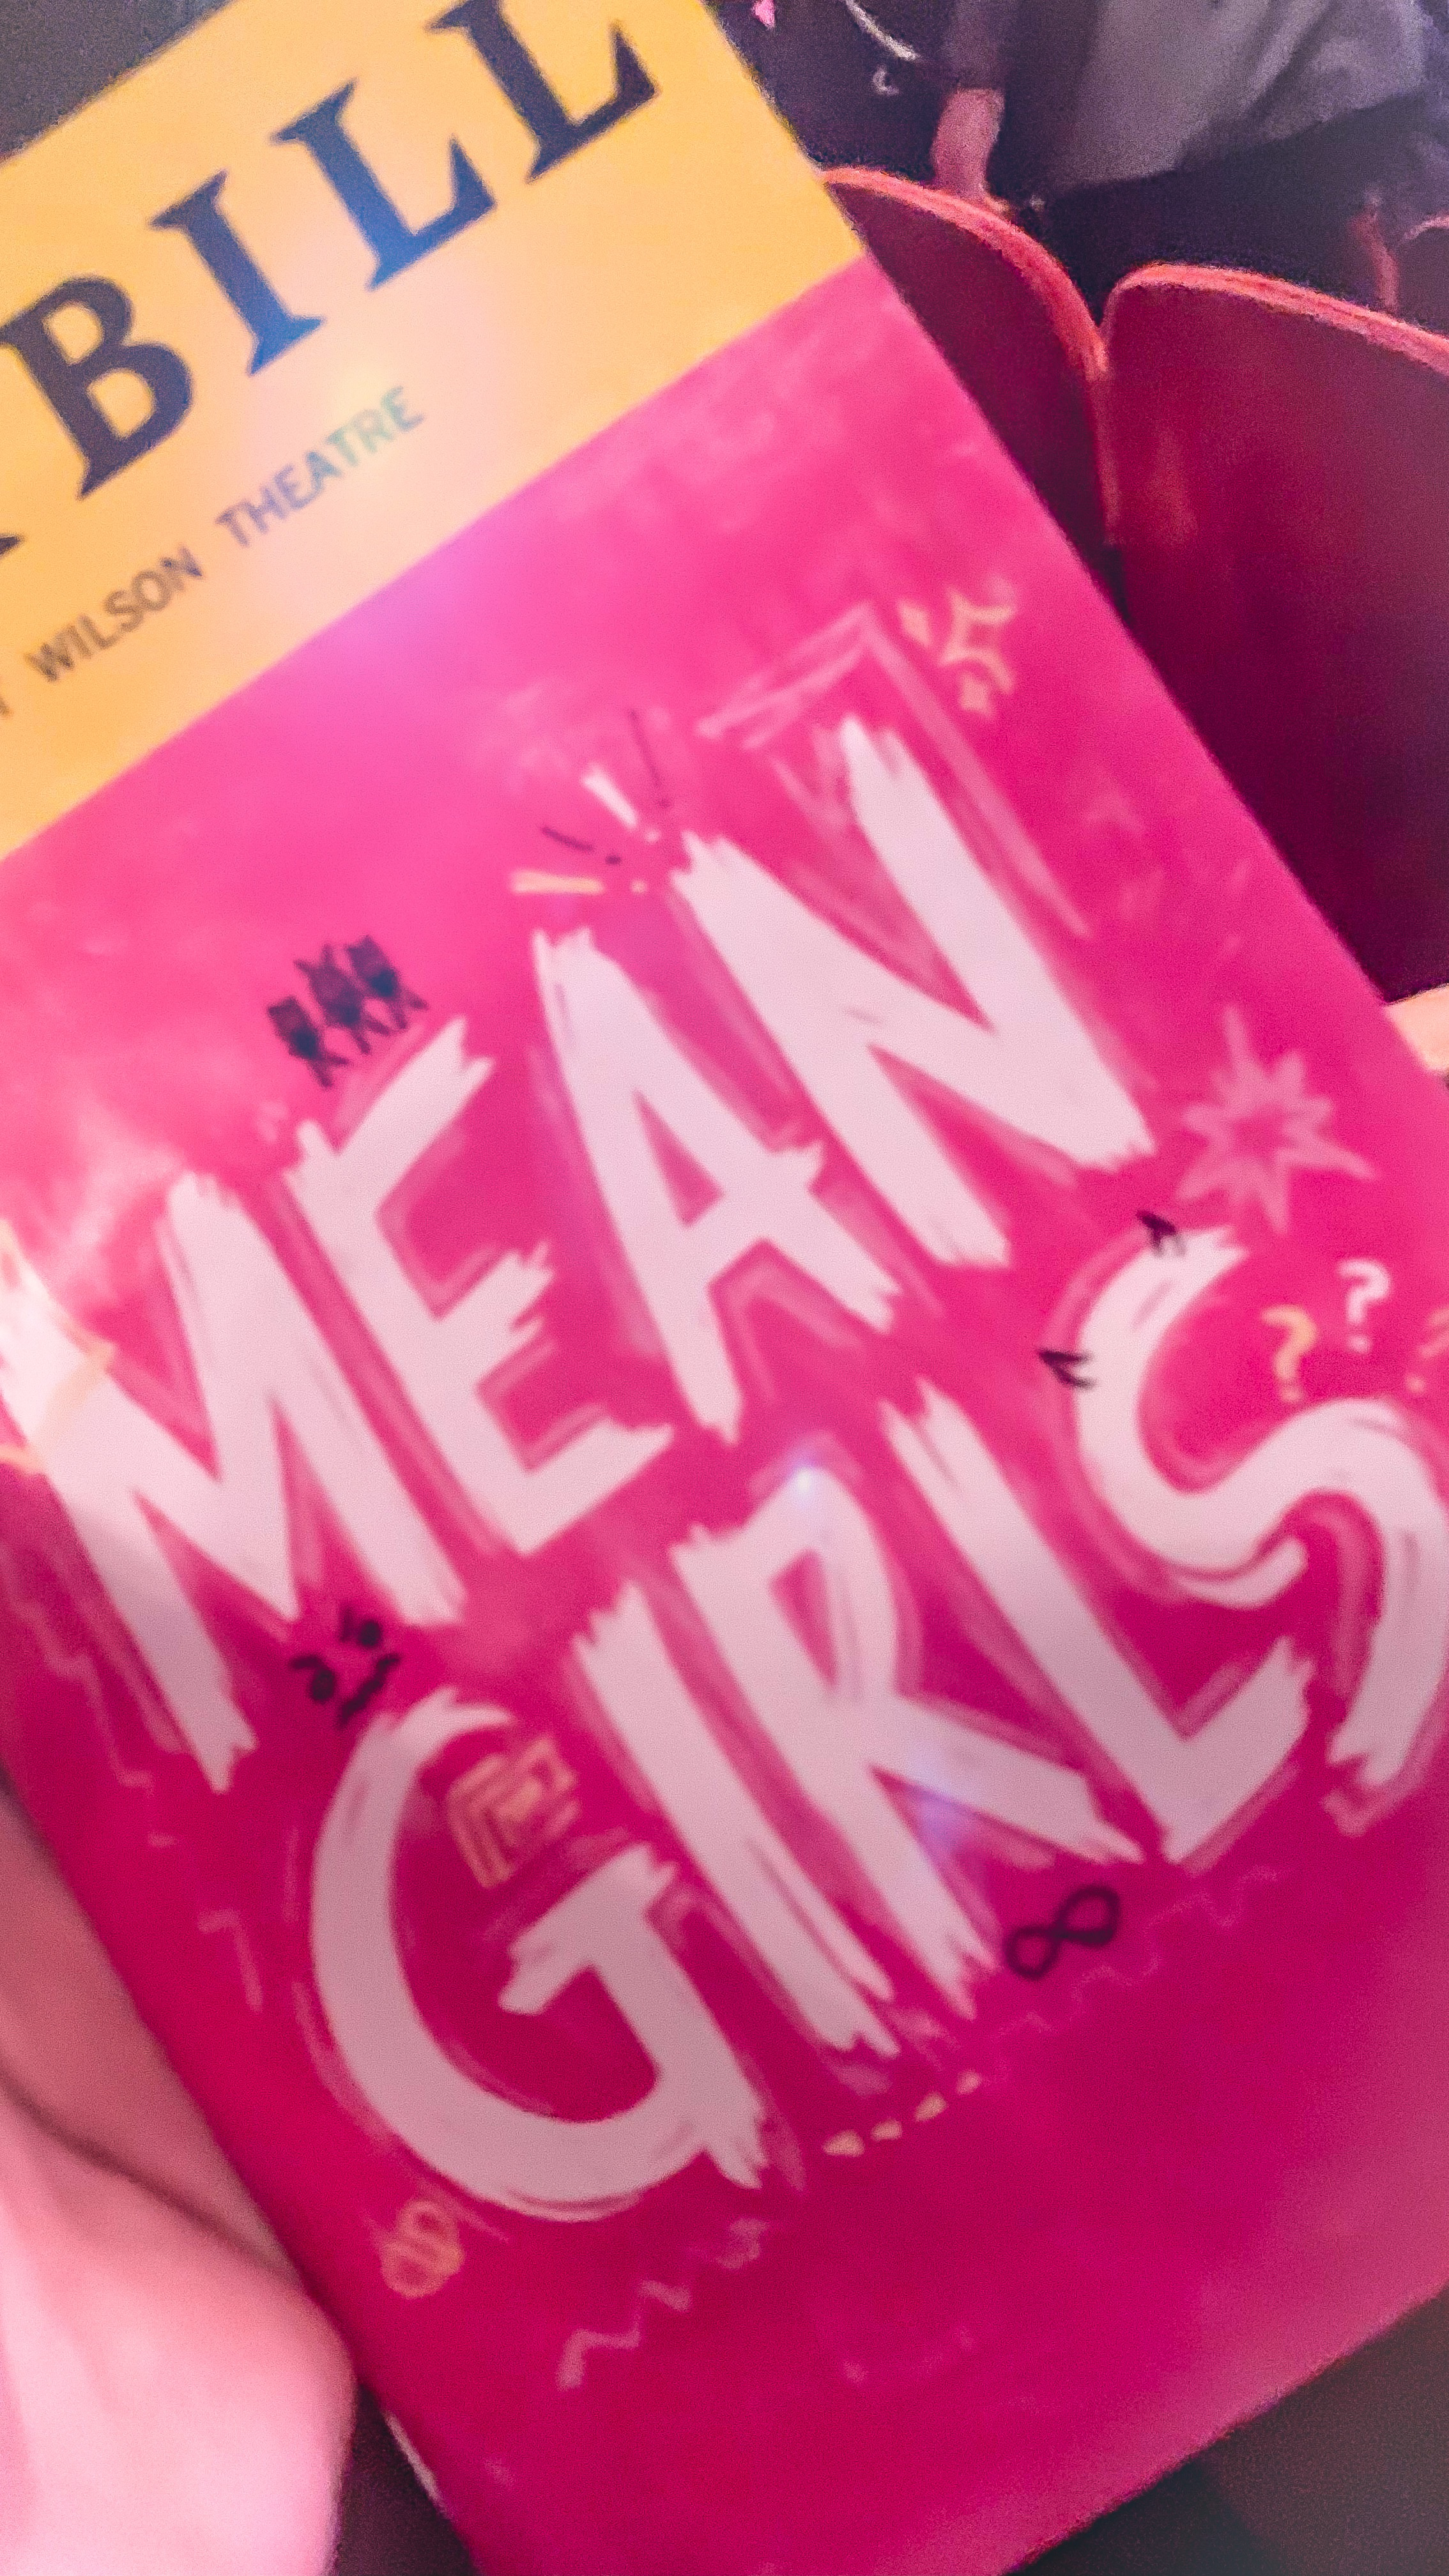 #MeanGirlsBway Mean Girls on Broadway